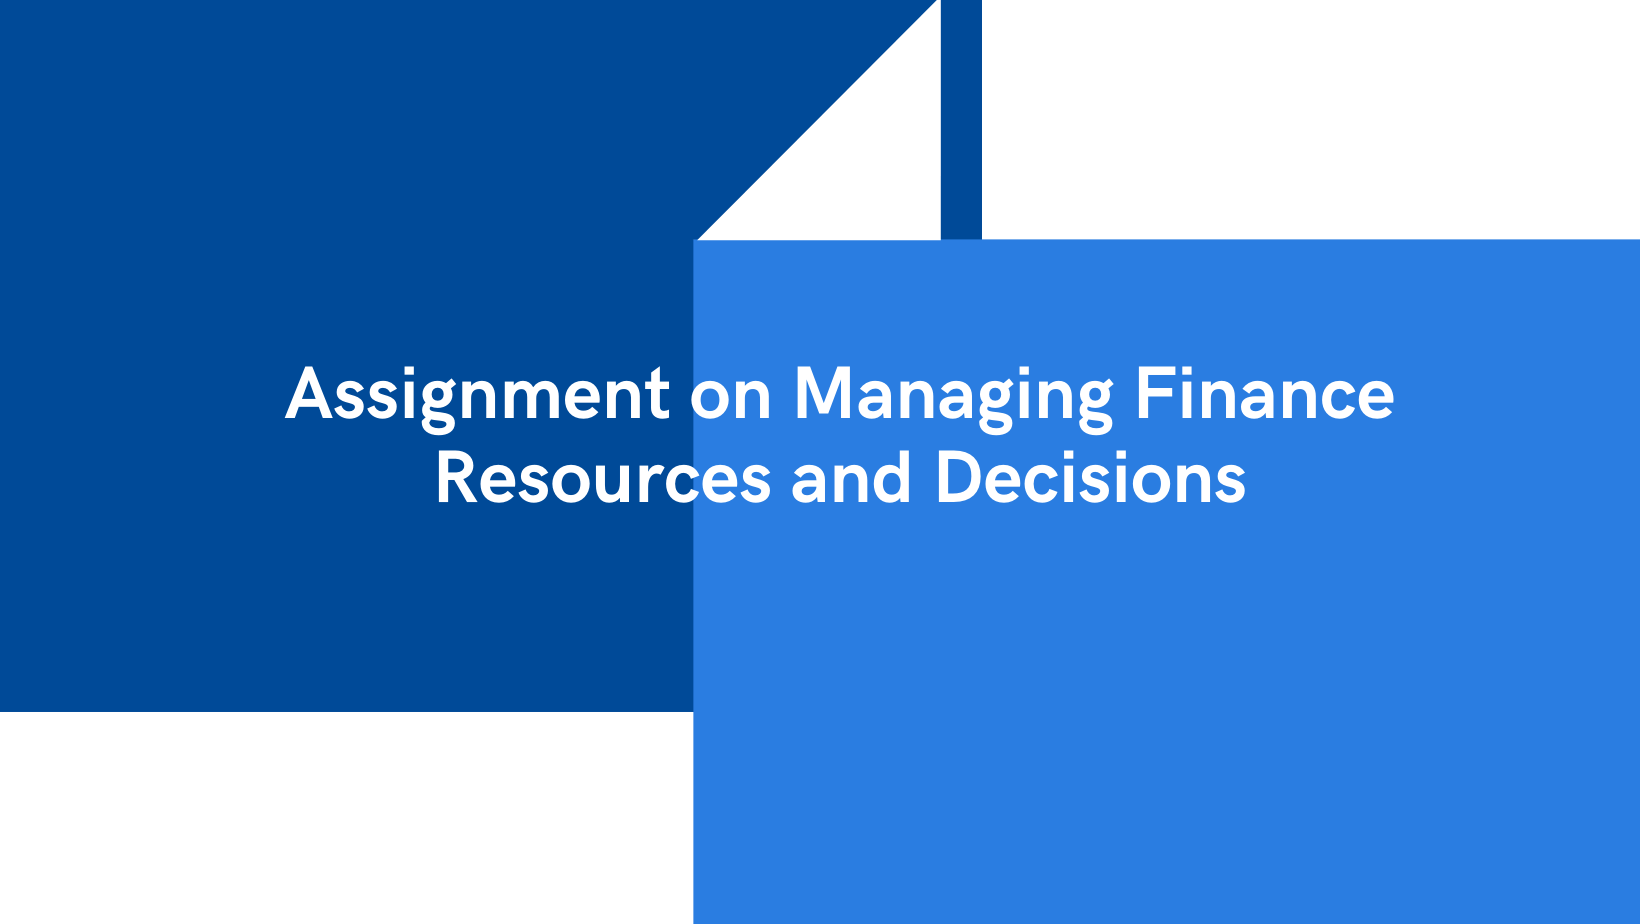 Assignment on Managing Finance Resources and Decisions